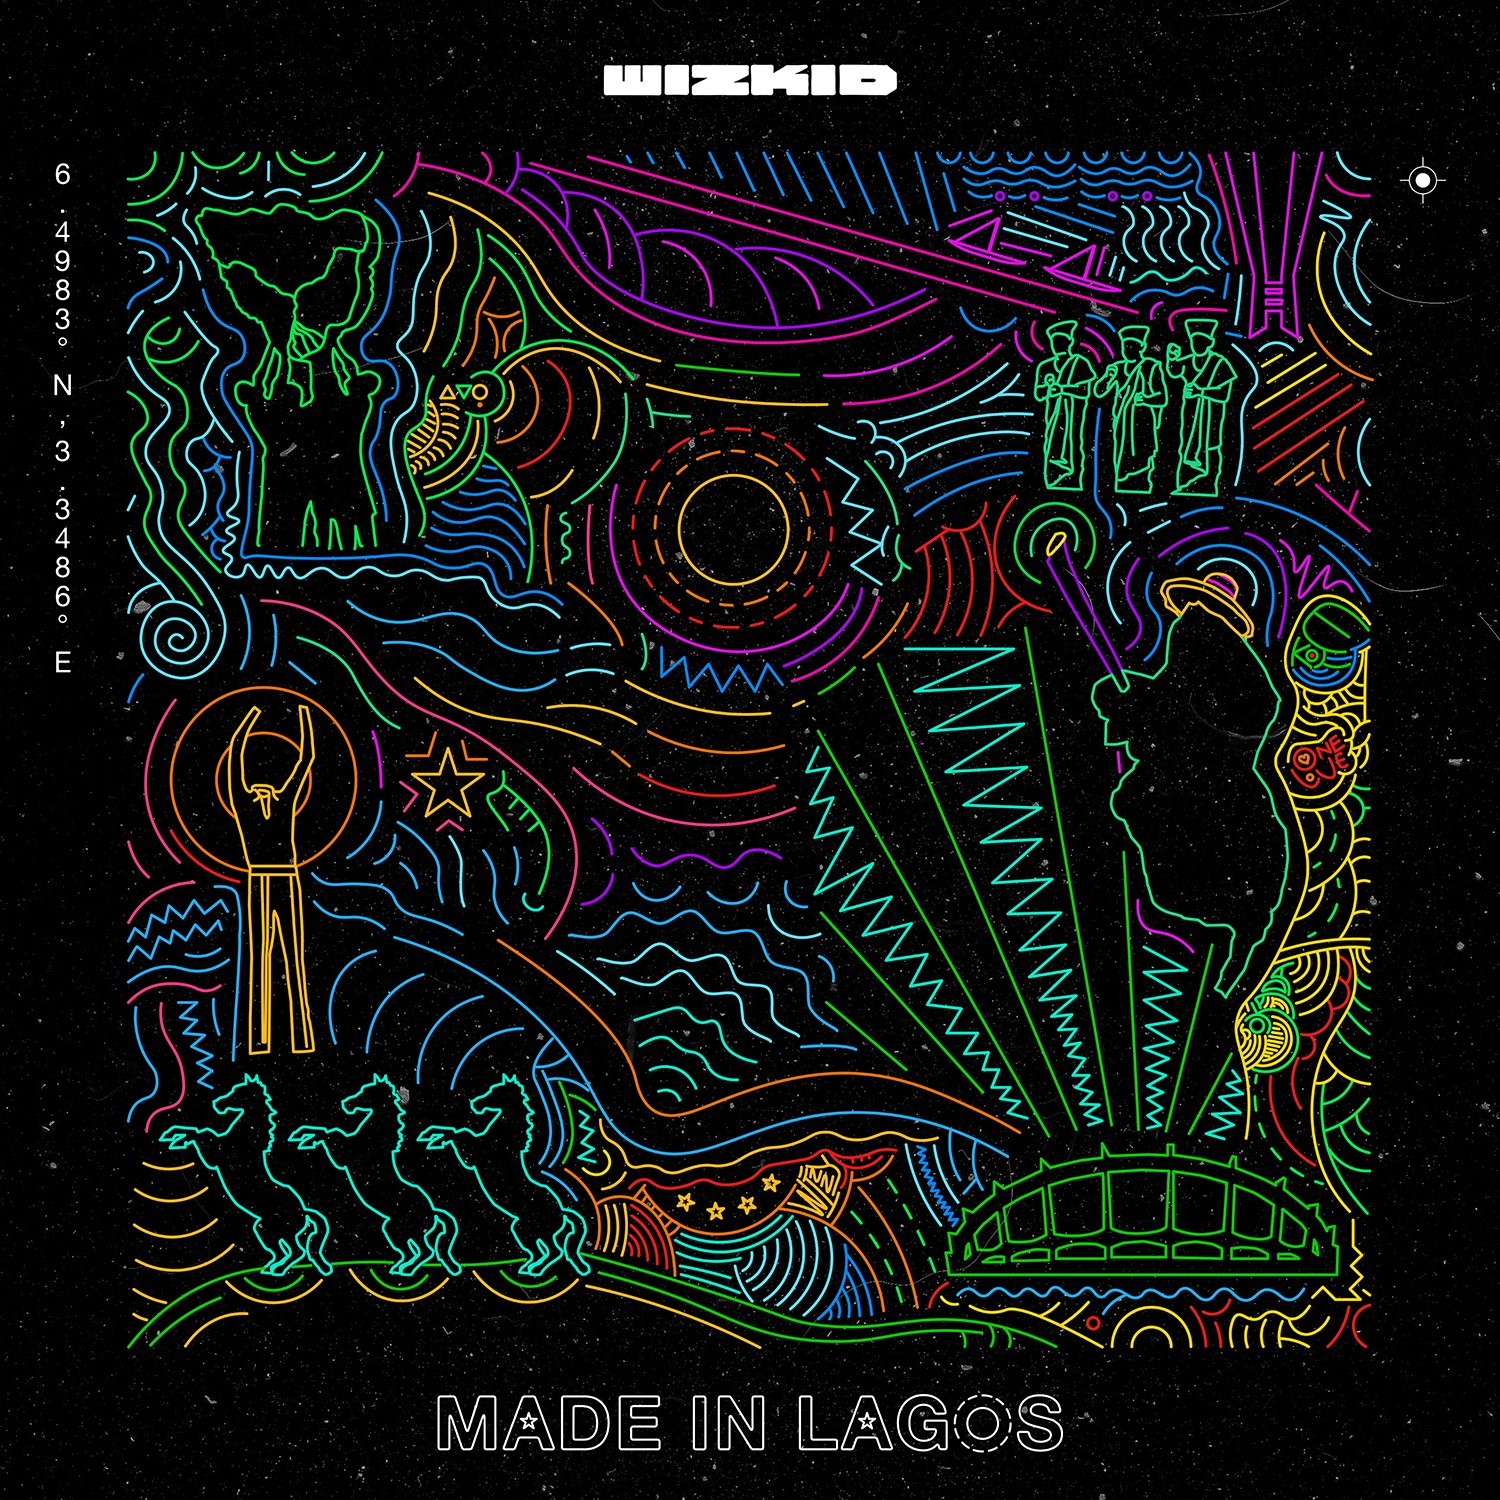 [Exclusive] Breakdown of the iconic 'Made in Lagos' artwork with team BEDU.